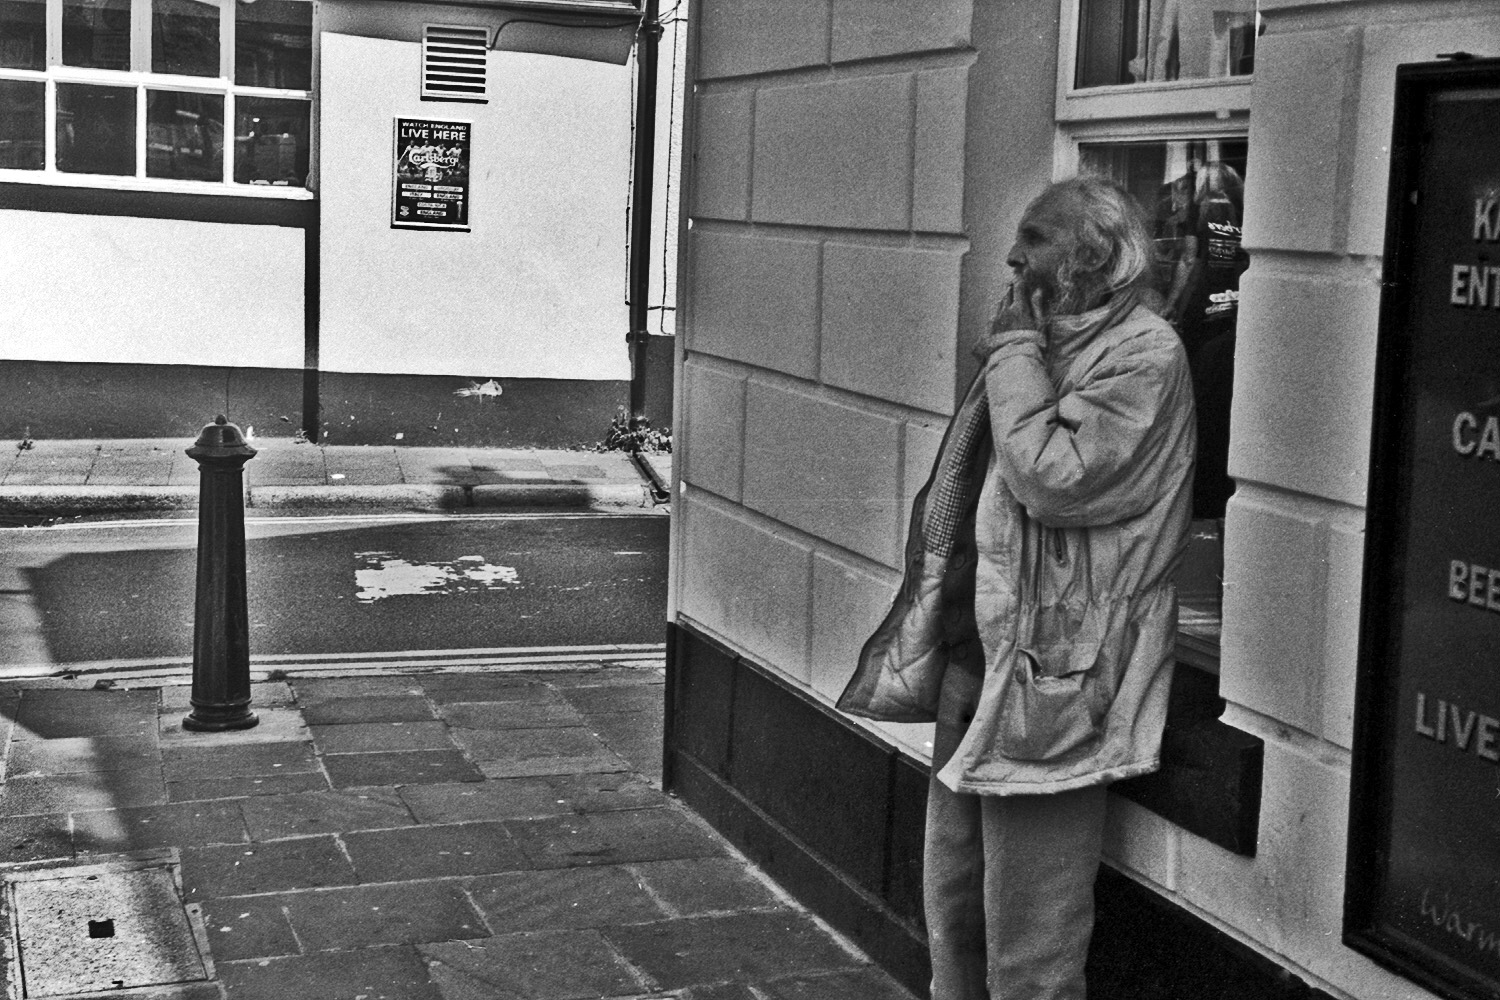 man smokes outside pub whitehaven street photography uk photographer kevin shelley prints for sale leica m2 jupiter 8 50 f2